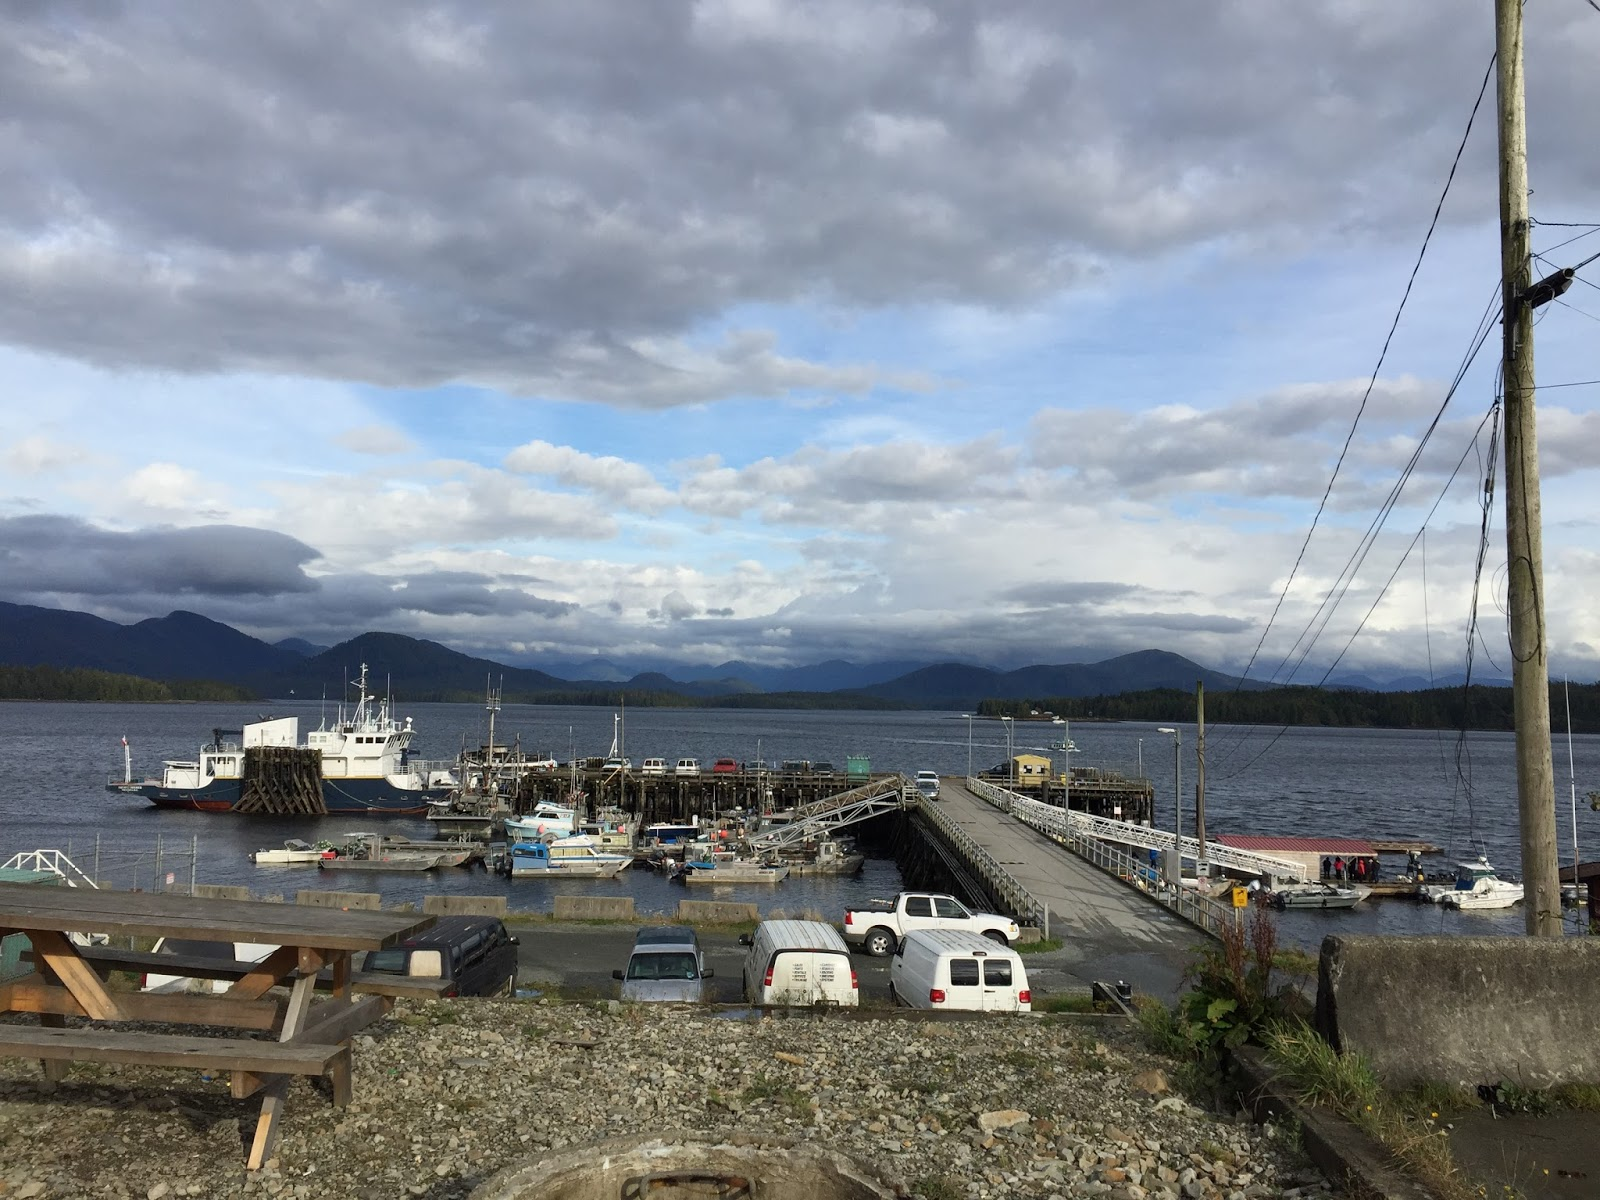 A little blue sky pops out by the store looking out at the dock and the sea bus